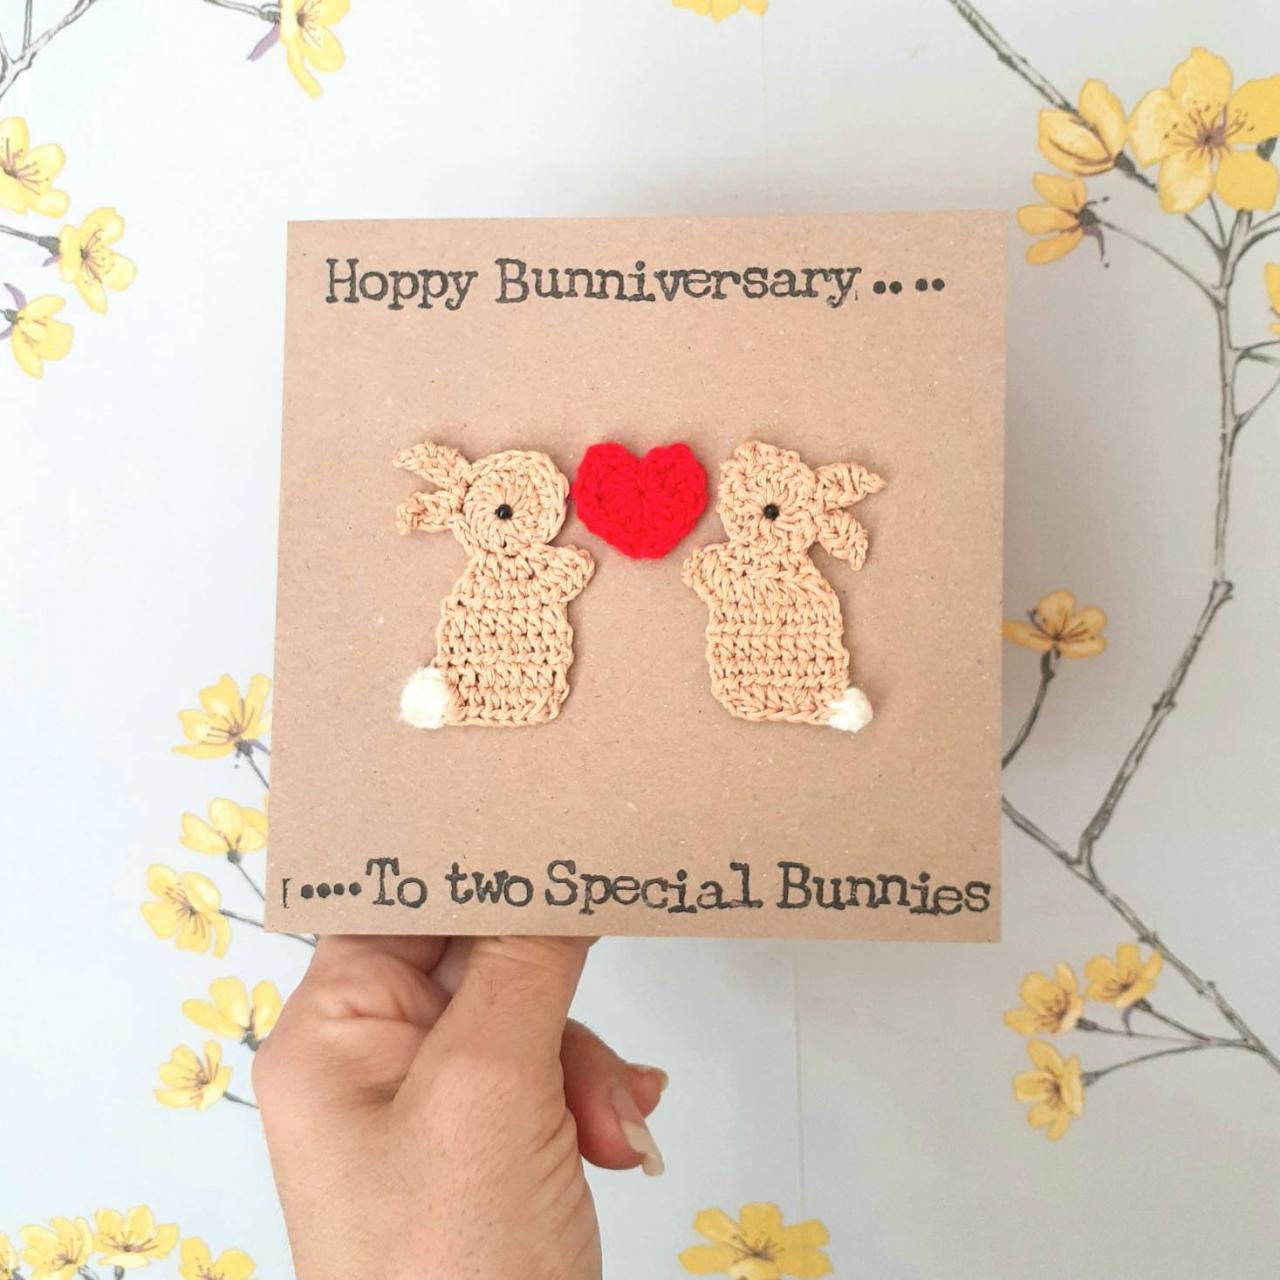 Valentine Bunnies Crochet Card, Anniversary Bunnies Crochet Greeting Card, Crochet Card, Cute Bunnies Card, Love Bunnies Card, Quirky Bunny Card,